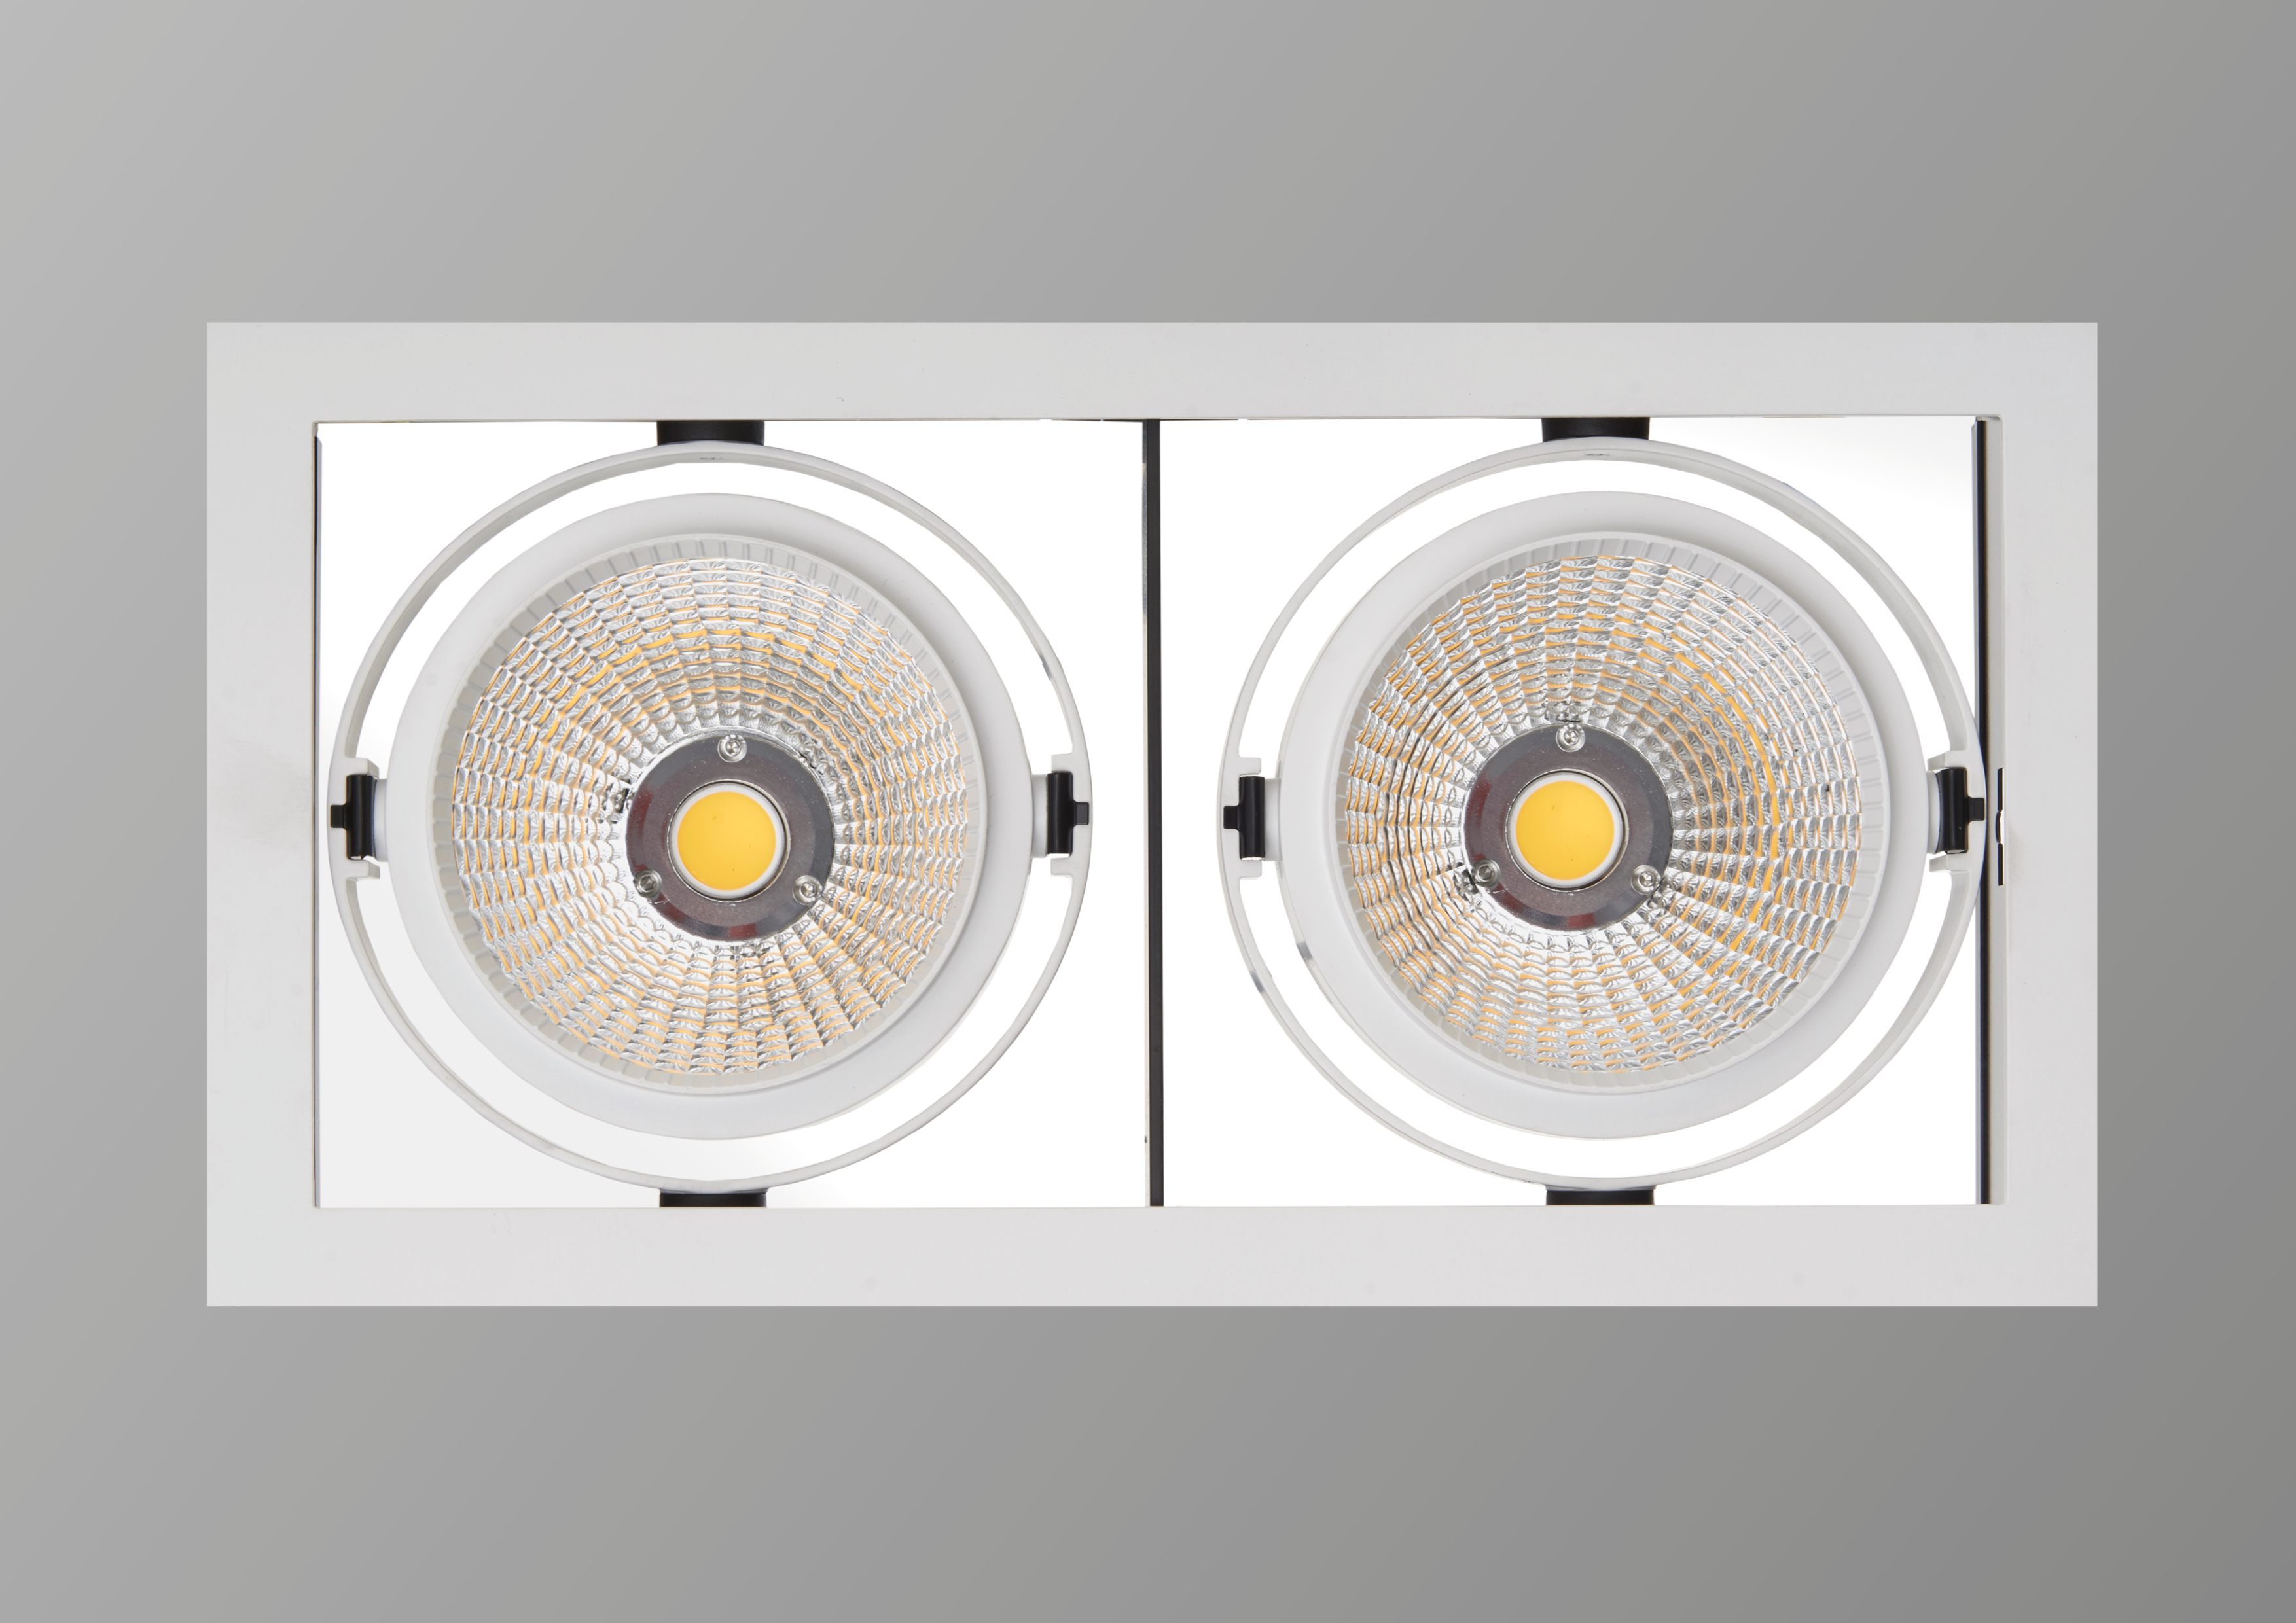 https://contrac-lighting.co.uk/wp-content/uploads/2018/01/qsg211.jpg